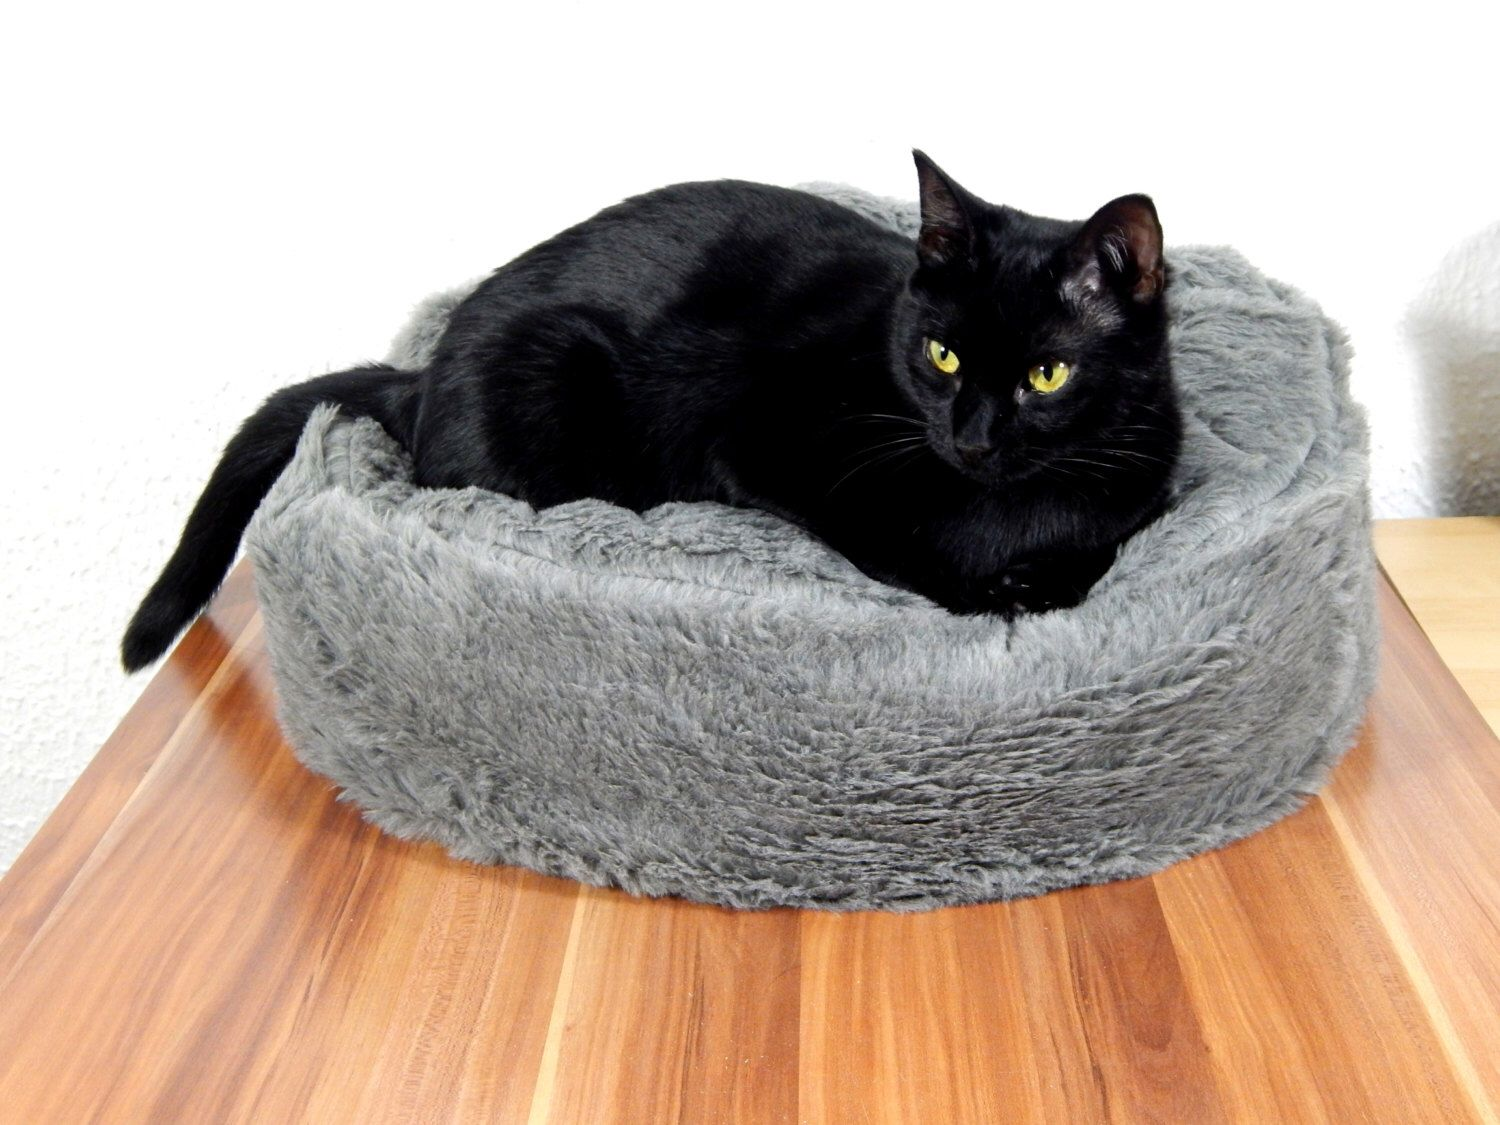 Cat Bean Bag Bed Fluffy Grey Synthetic Fur For Your Royal Pets Gift Filled With Filling Non Slip Material By Omorokapets On